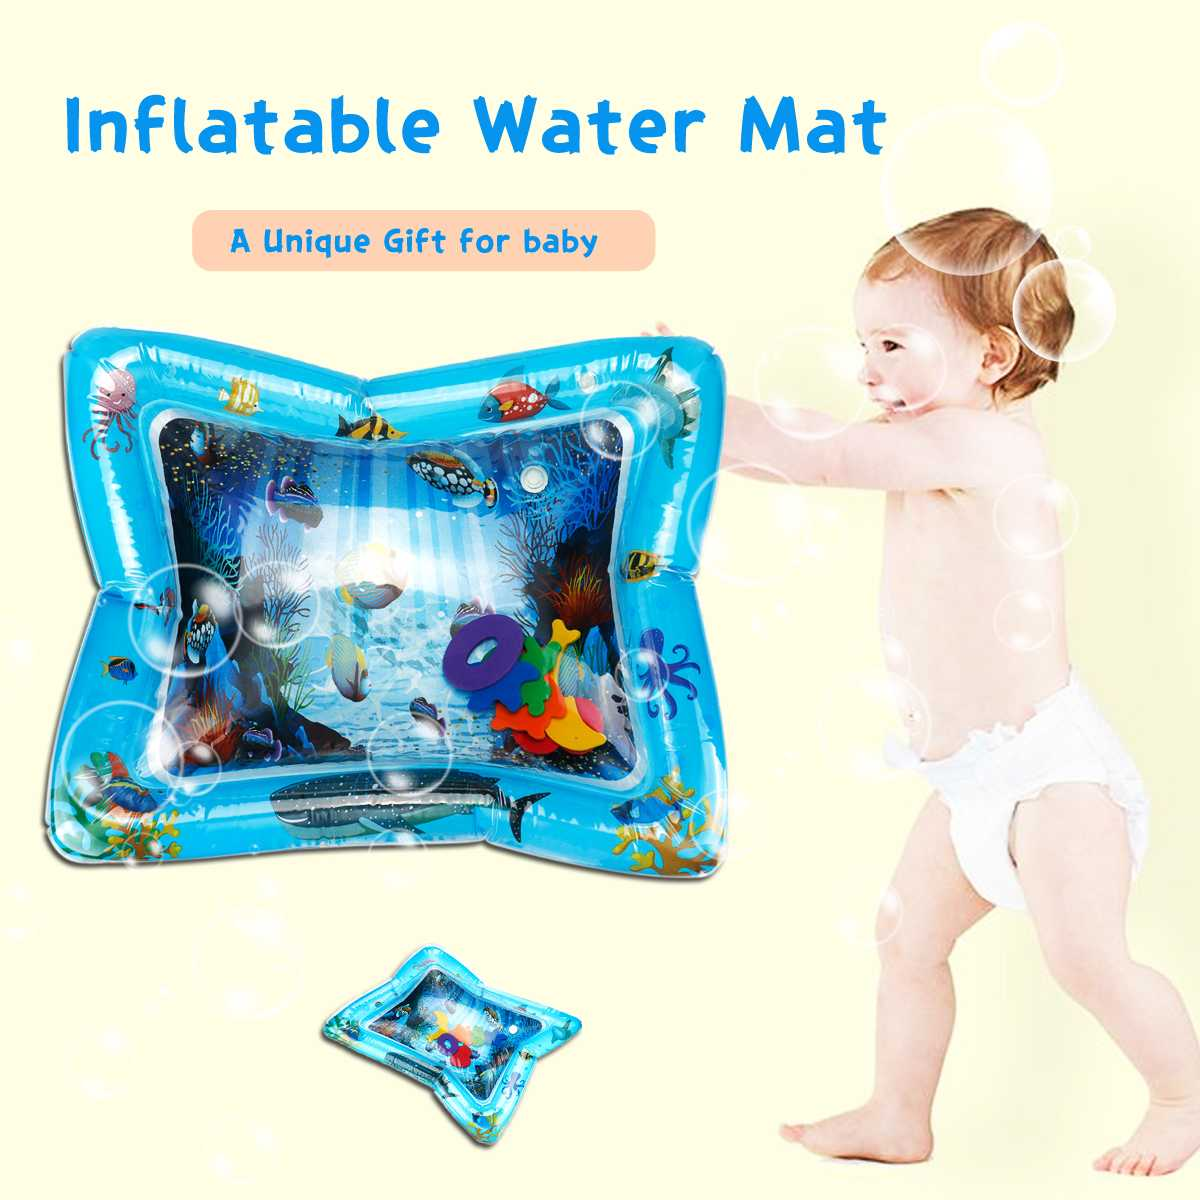 Baby Kids Water Play Mat Toys Inflatable PVC Infant Tummy Time Toddler Activity Play Water Mat For Babies